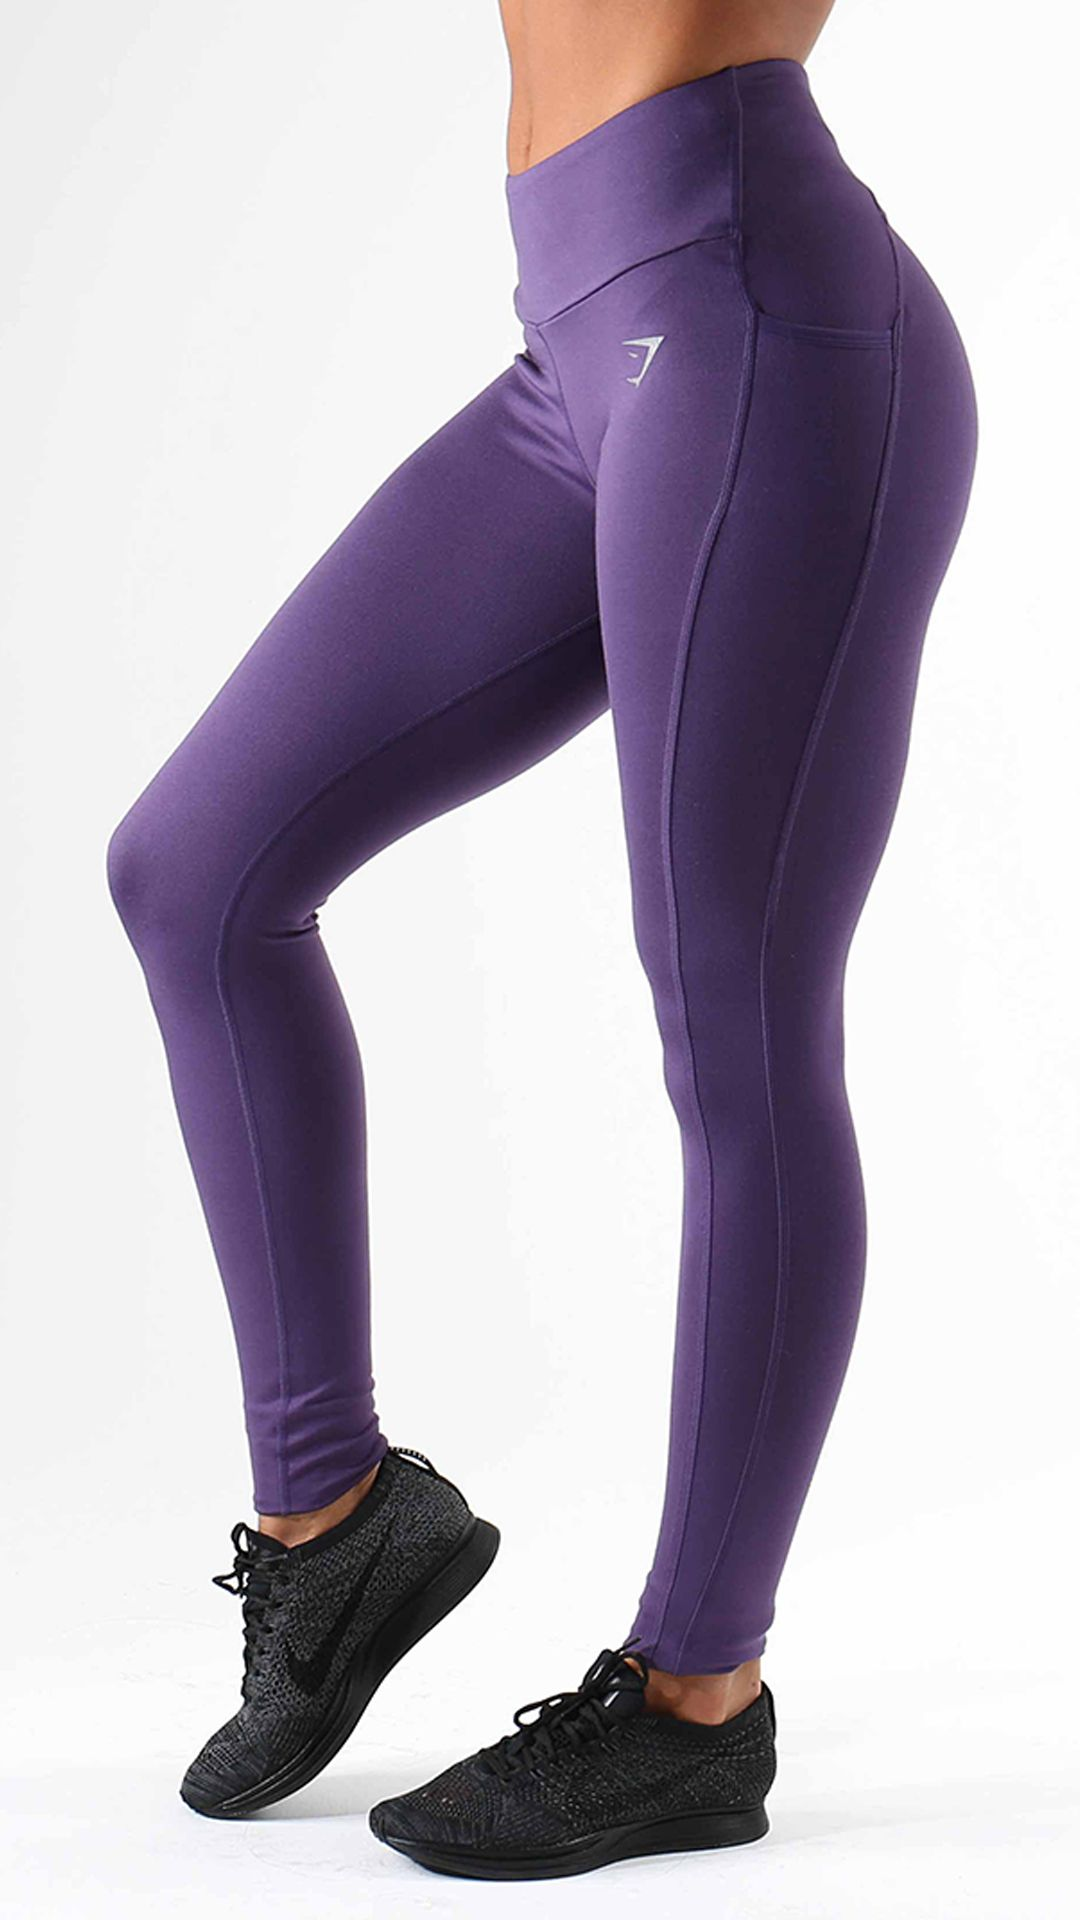 b36d5a0699ecc The Sculpture Leggings in rich purple, are high-waisted and flexible  exercise leggings, with Gymshark DRY technology for a cool, comfortable  workout.